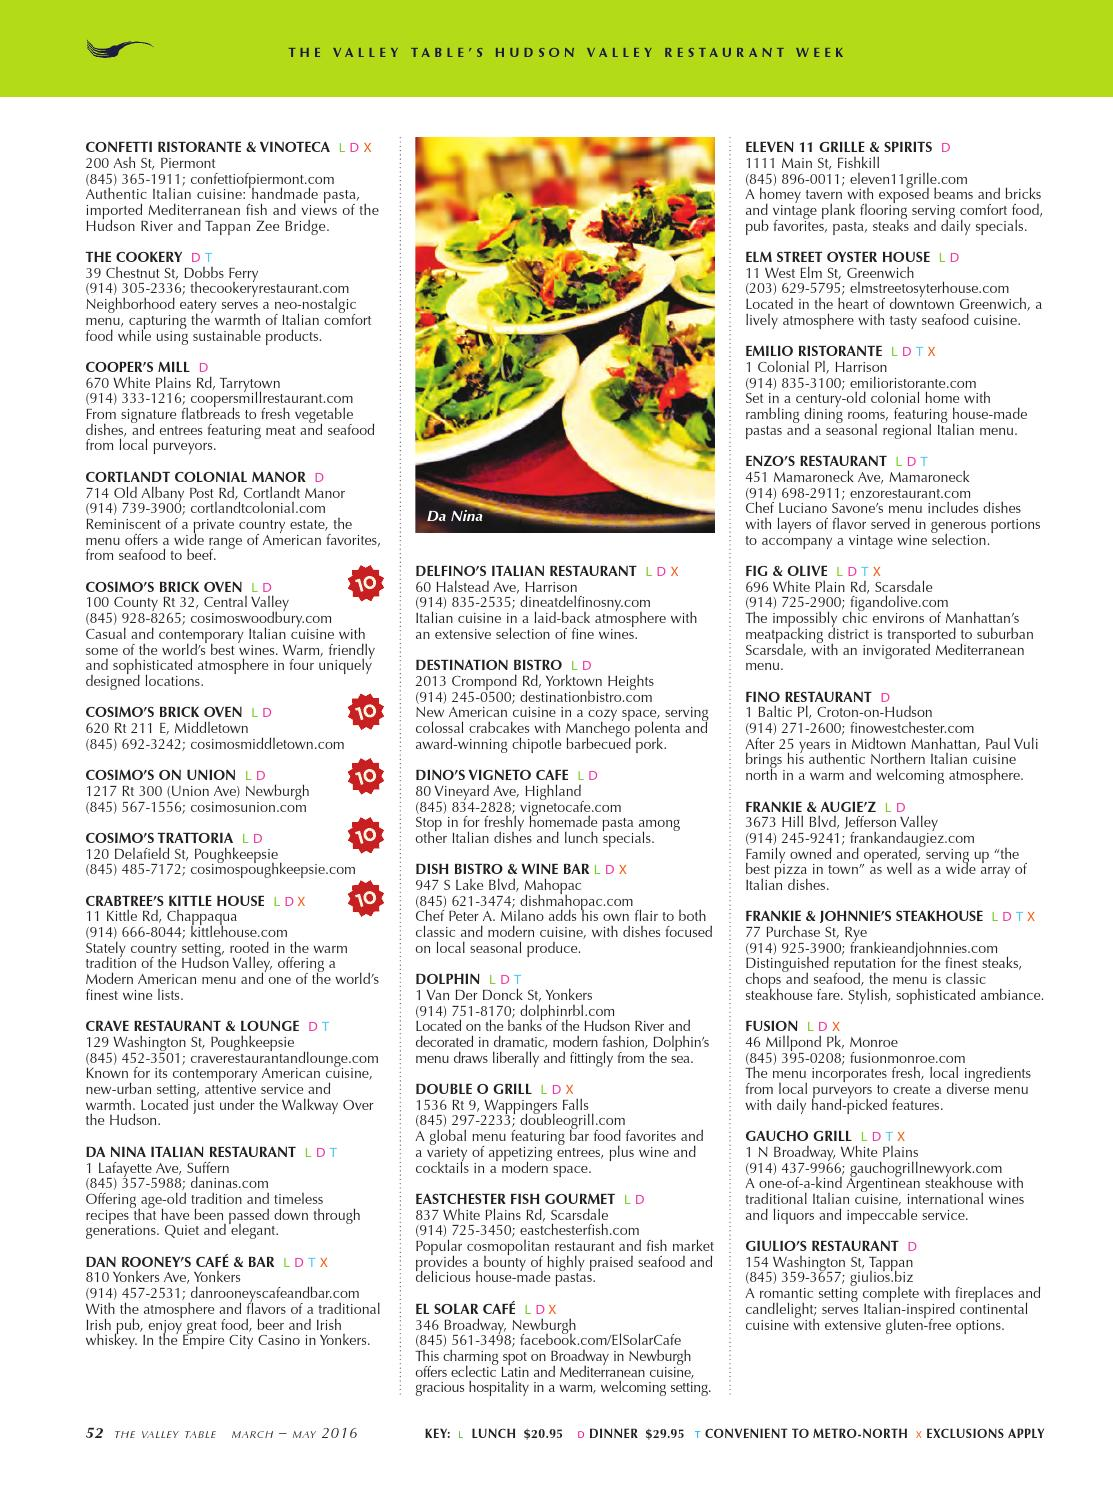 Spring 2016 Hudson Valley Restaurant Week by Valley Table